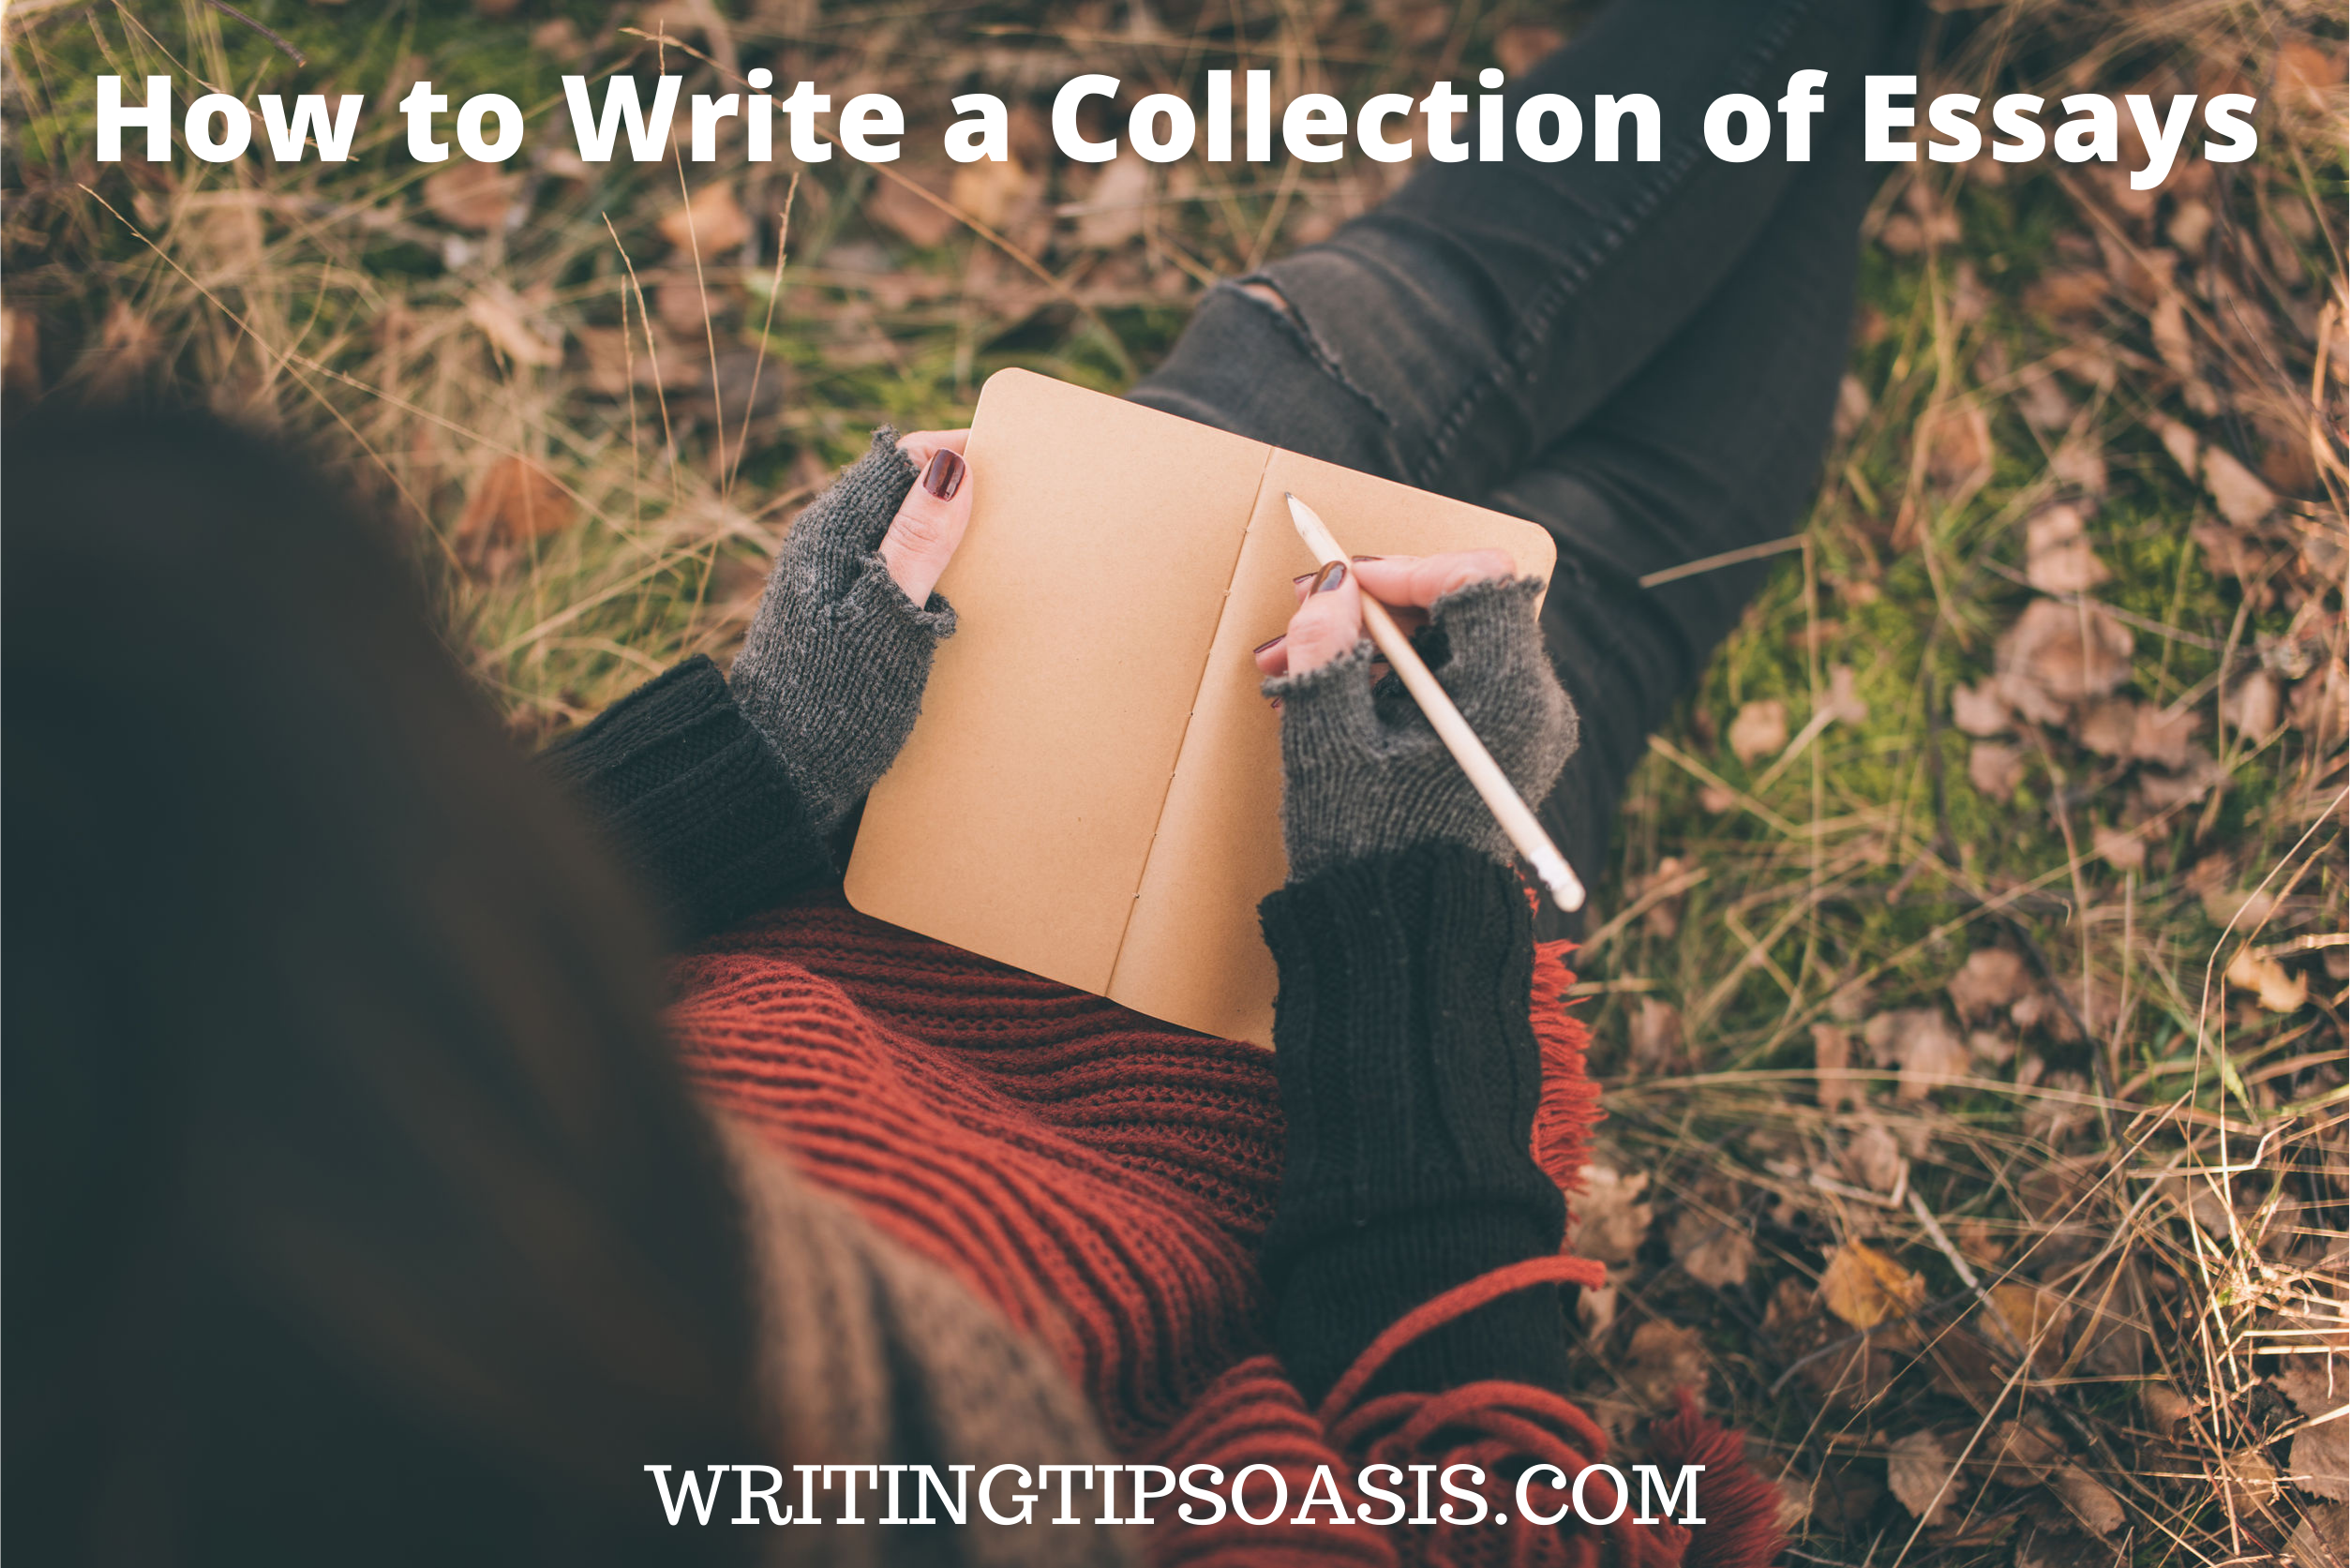 How to Write a Collection of Essays